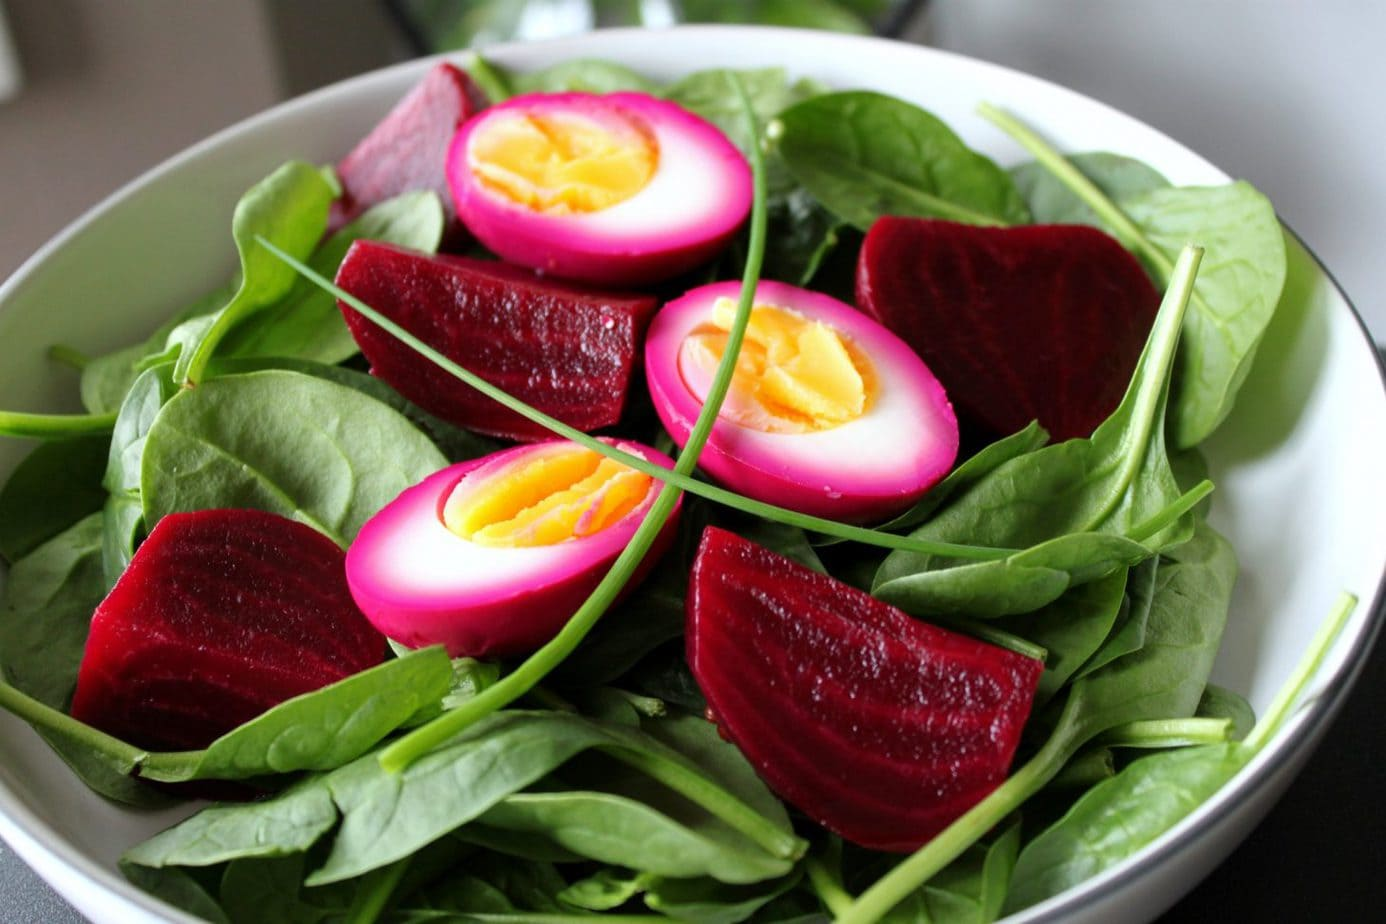 Pickled Egg and Beet Spinach Spring Salad - Dish 'n' the Kitchen Wake Up those tastebuds with this eye catching beet marinated pickled egg, beet and spinach salad. Make it ahead of time, then throw it together at the last minute. It's THE perfect hostess make ahead salad. #pickledbeets #spinachsalad #salad